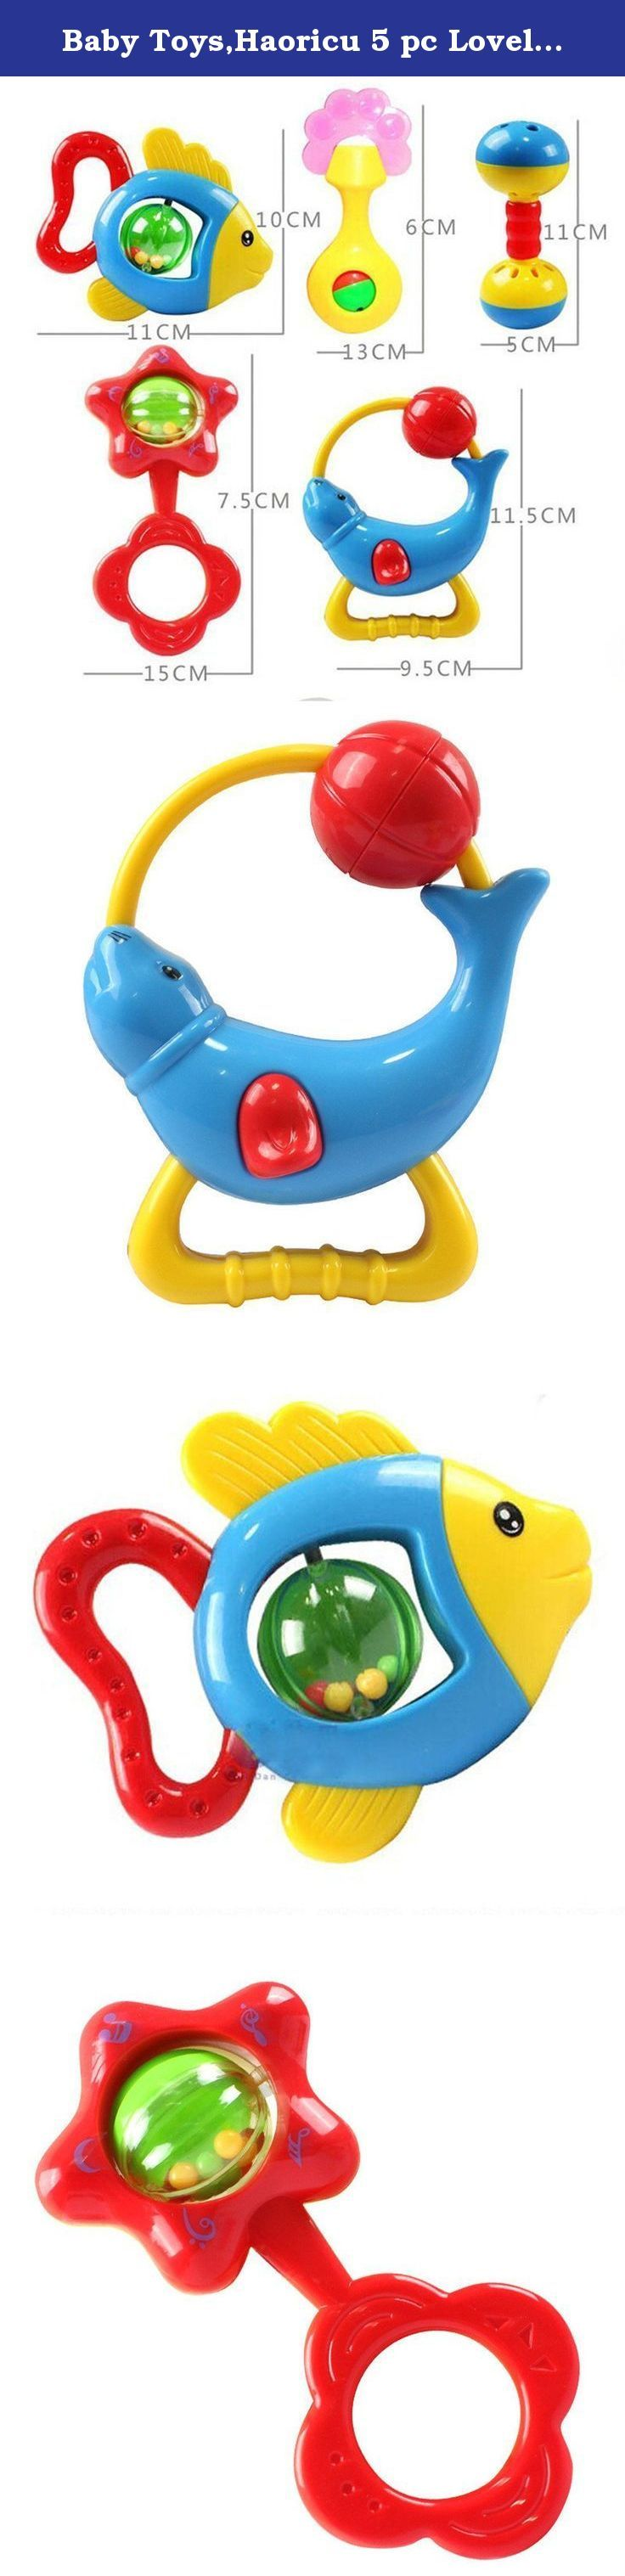 Baby Toys,Haoricu 5 pc Lovely Animal Handbells Developmental Kids Baby Toy Bells. Feature: ✪ 100% brand new and high quality. ✪ Quantity: 5 pc ✪ And each piece of metal knock voice is different. ✪ Can Inspire children's talent for music. ✪ Bright colors increase the kids sensitive to colors. ✪ Suitable for 6 months to 7 years old baby / kids. ✪ Material:Plastic ✪ Recommended Age:6 months- 7 years Package Content:: ✪1X Animal Handbells Developmental Toy Bells Kids Baby Rattle Lovely.